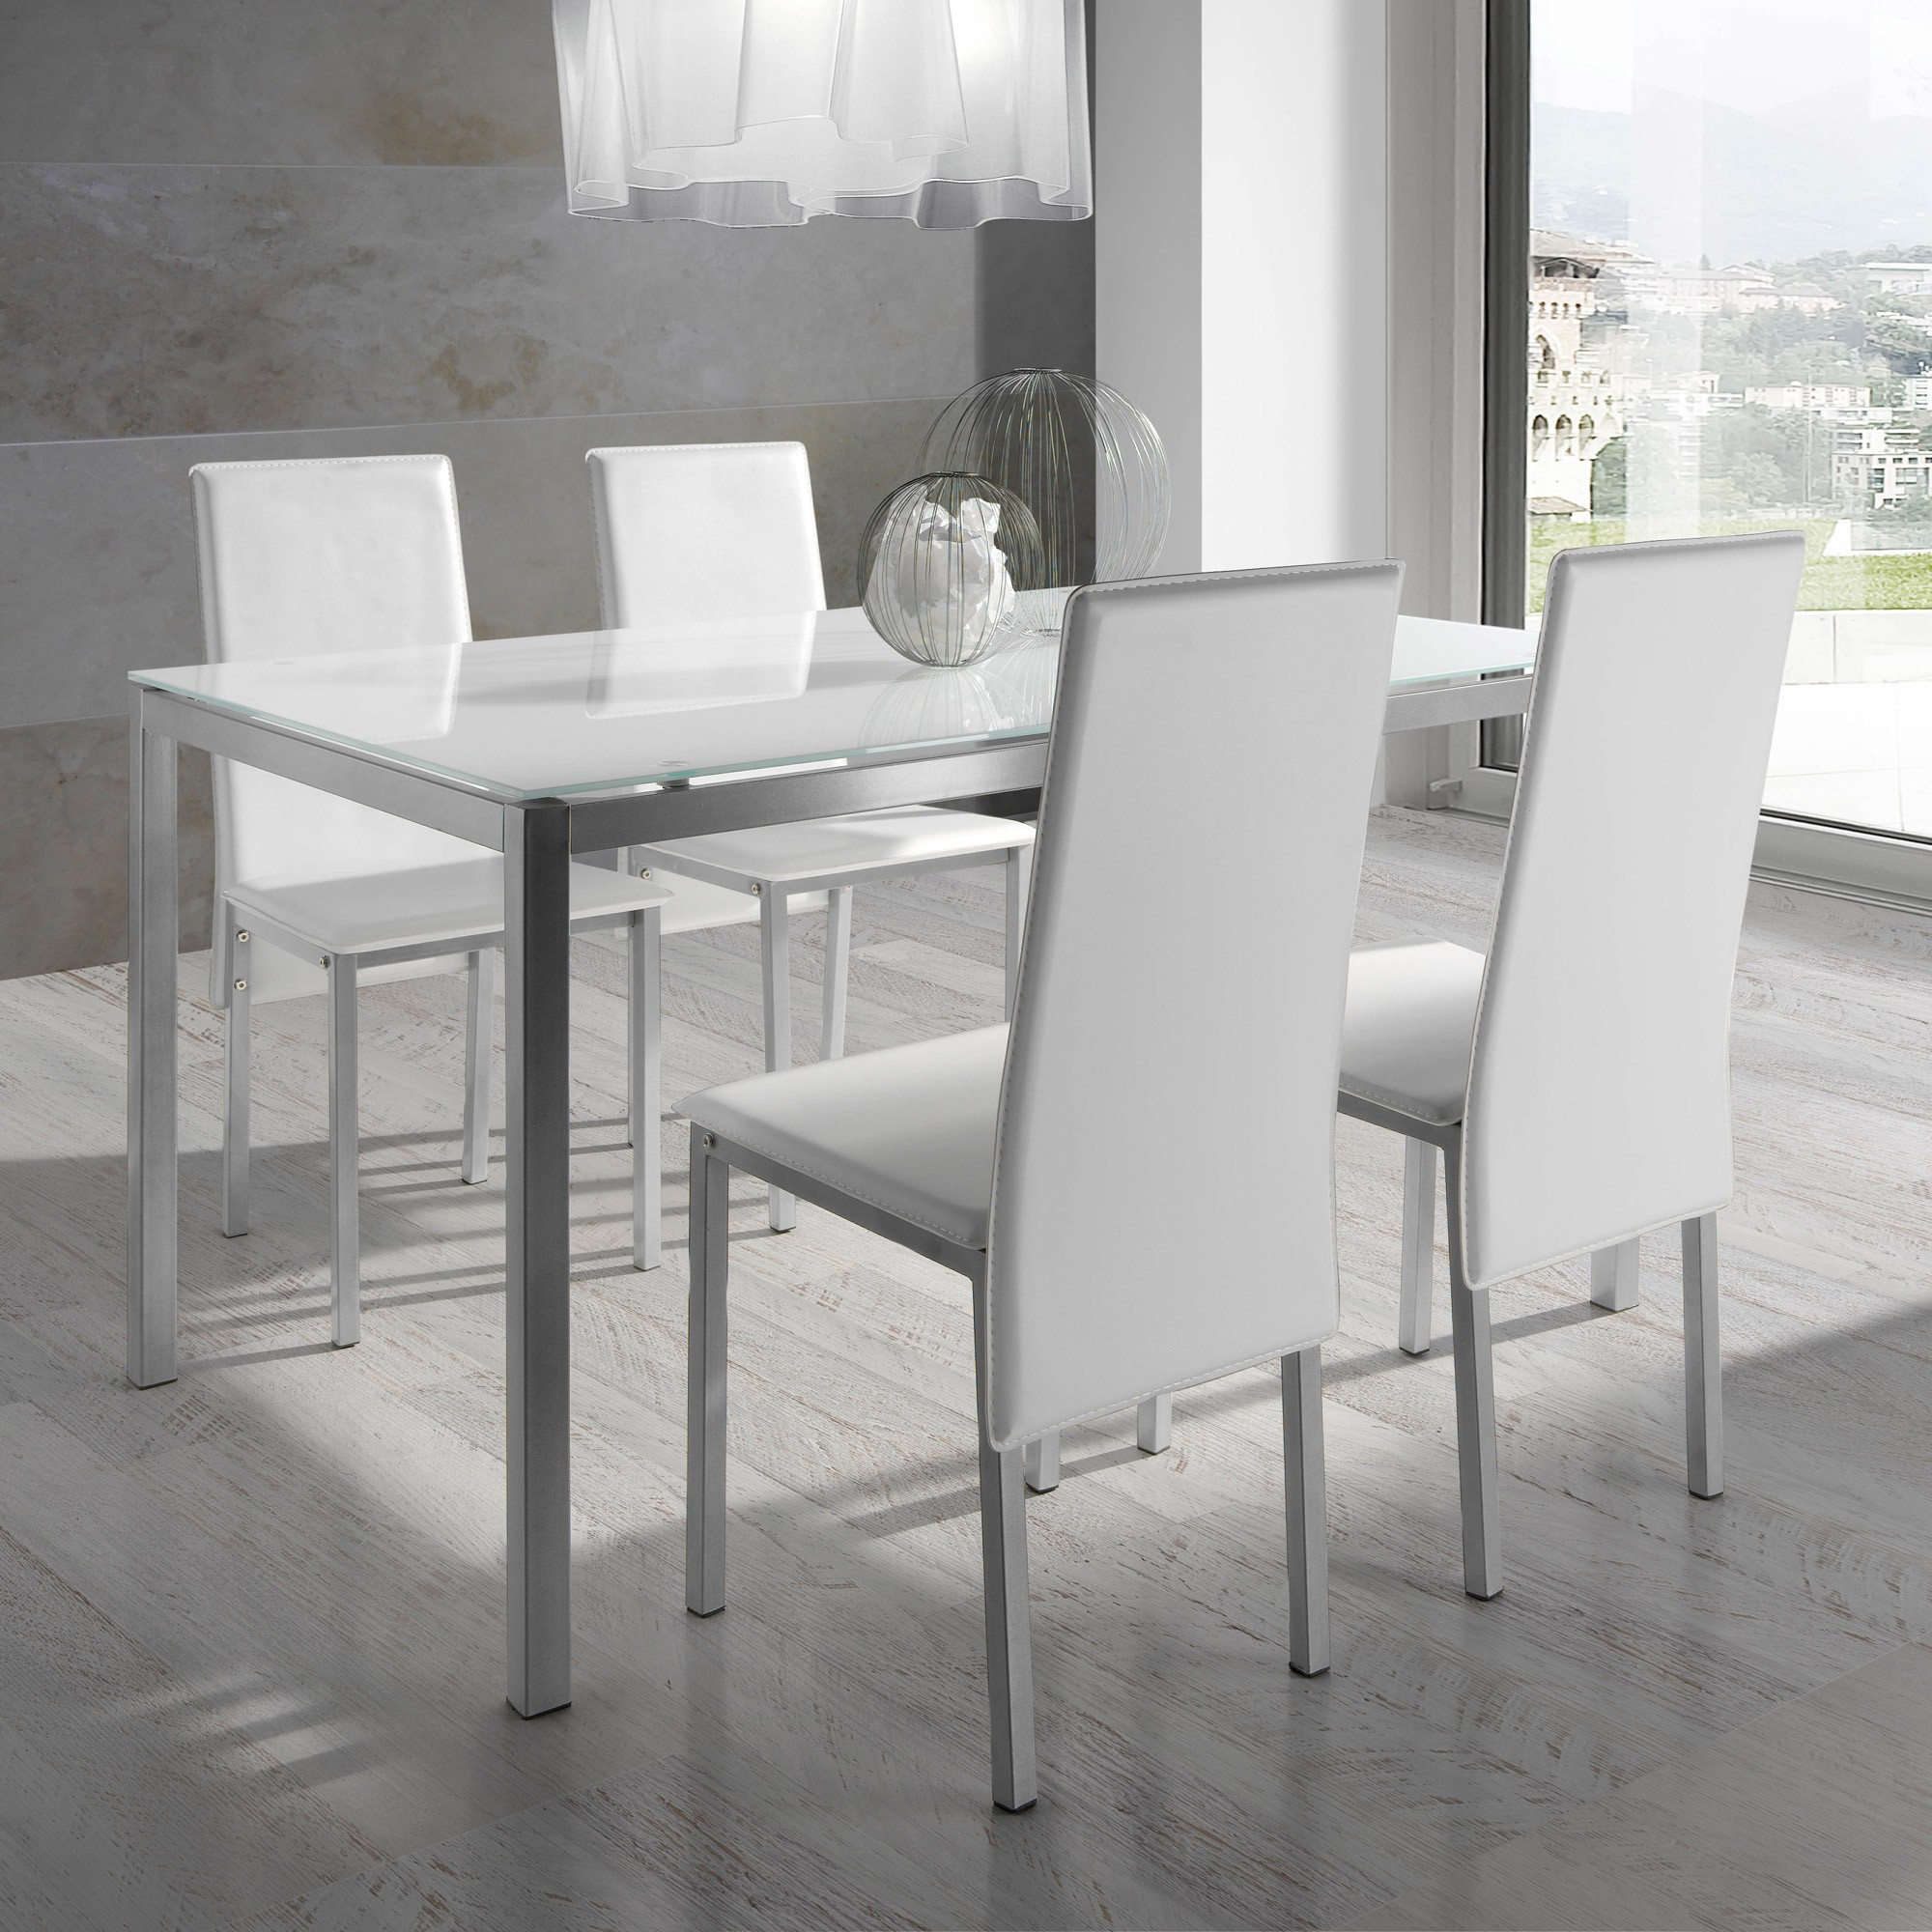 Ensemble table et chaise salle a manger but chaise for Chaise design de salle a manger